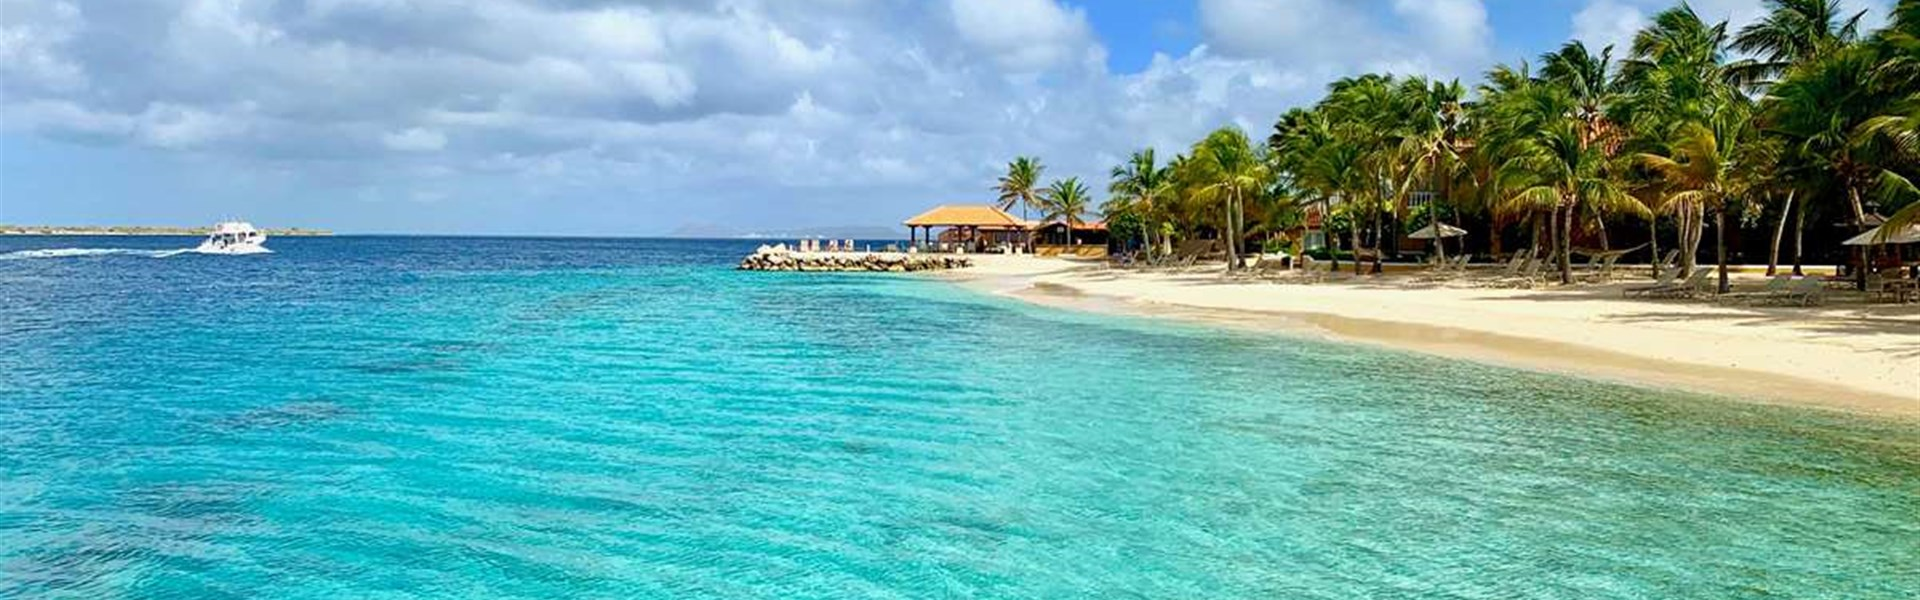 Harbour Village Beach Club - Harbour Village Beach Club, Bonaire - dovolená s CK Marco Polo